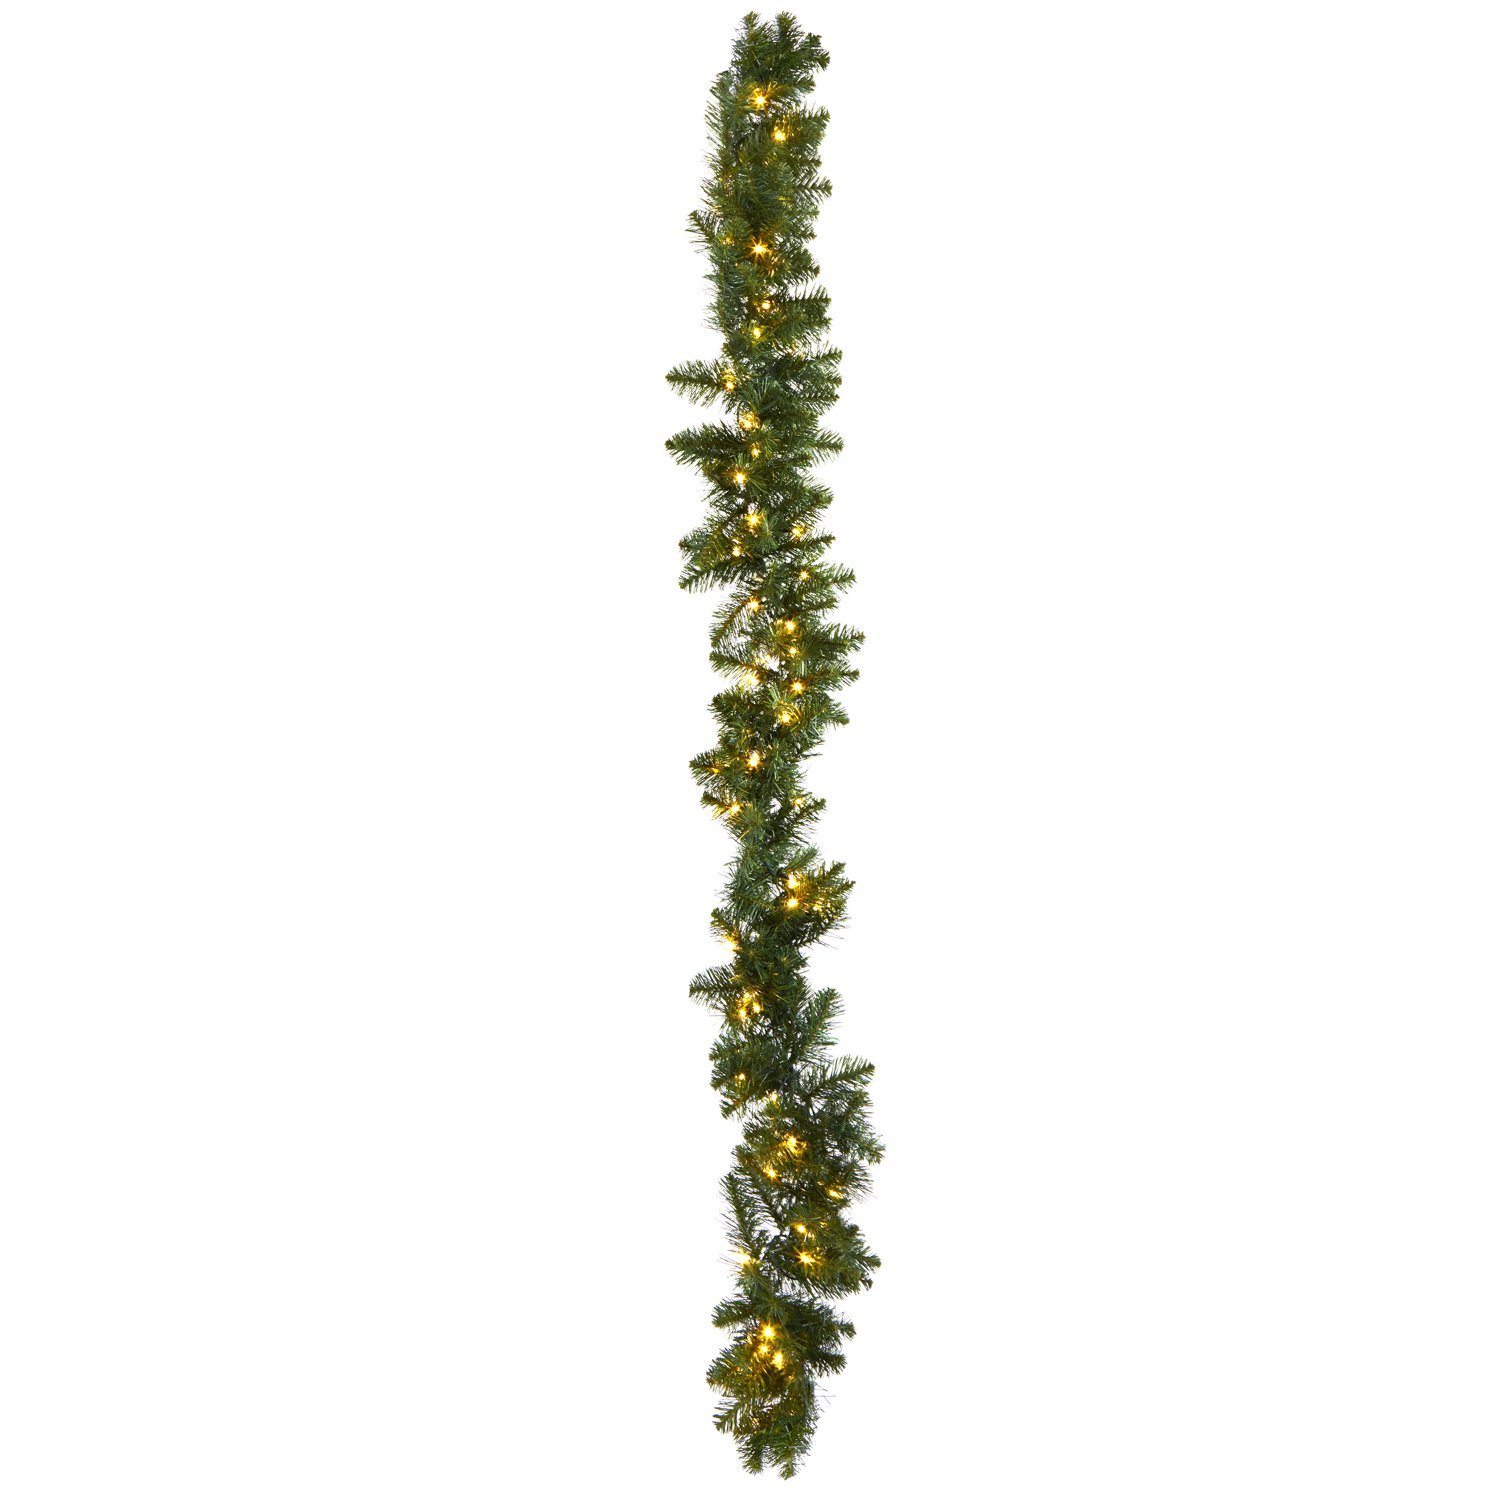 Pre-lit Pine Garland with Warm White LEDs | 9 ft, 100 Lights, Green, Connectable, Plugin, UL Listed